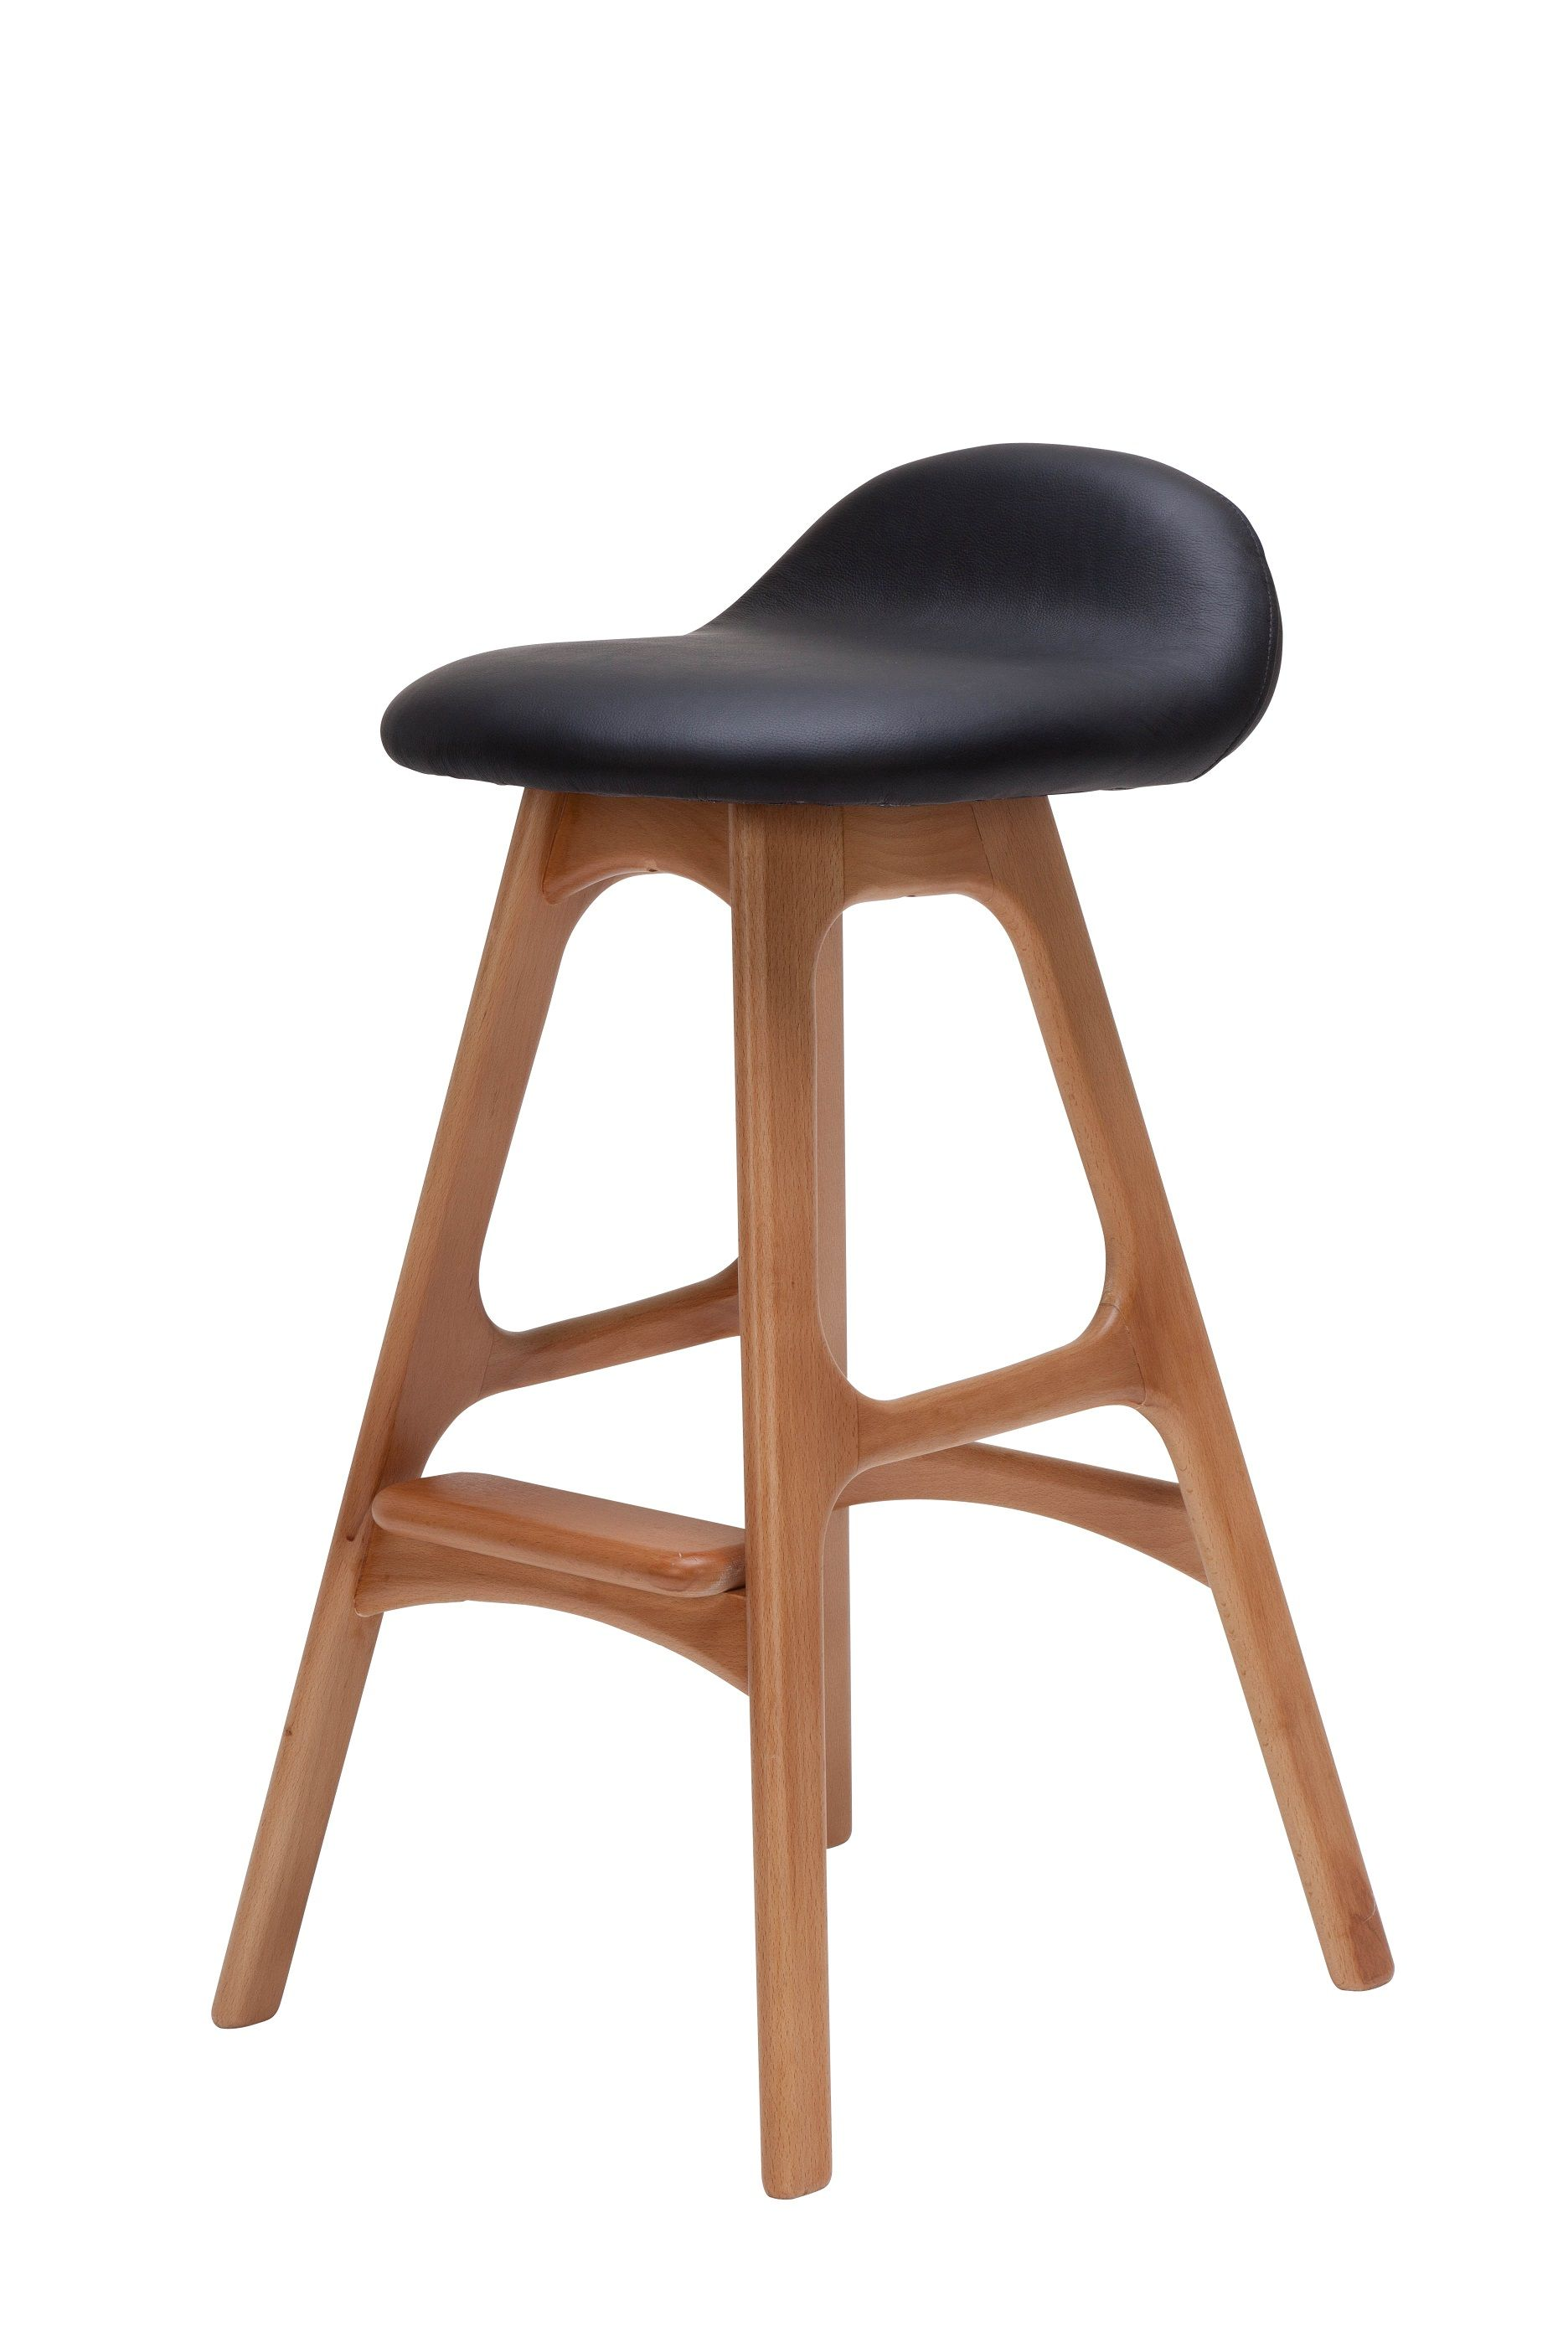 Superieur Minimalist Design Of Bar Stool Idea With Black Leatherette Top And Unique  Wood Legs Design